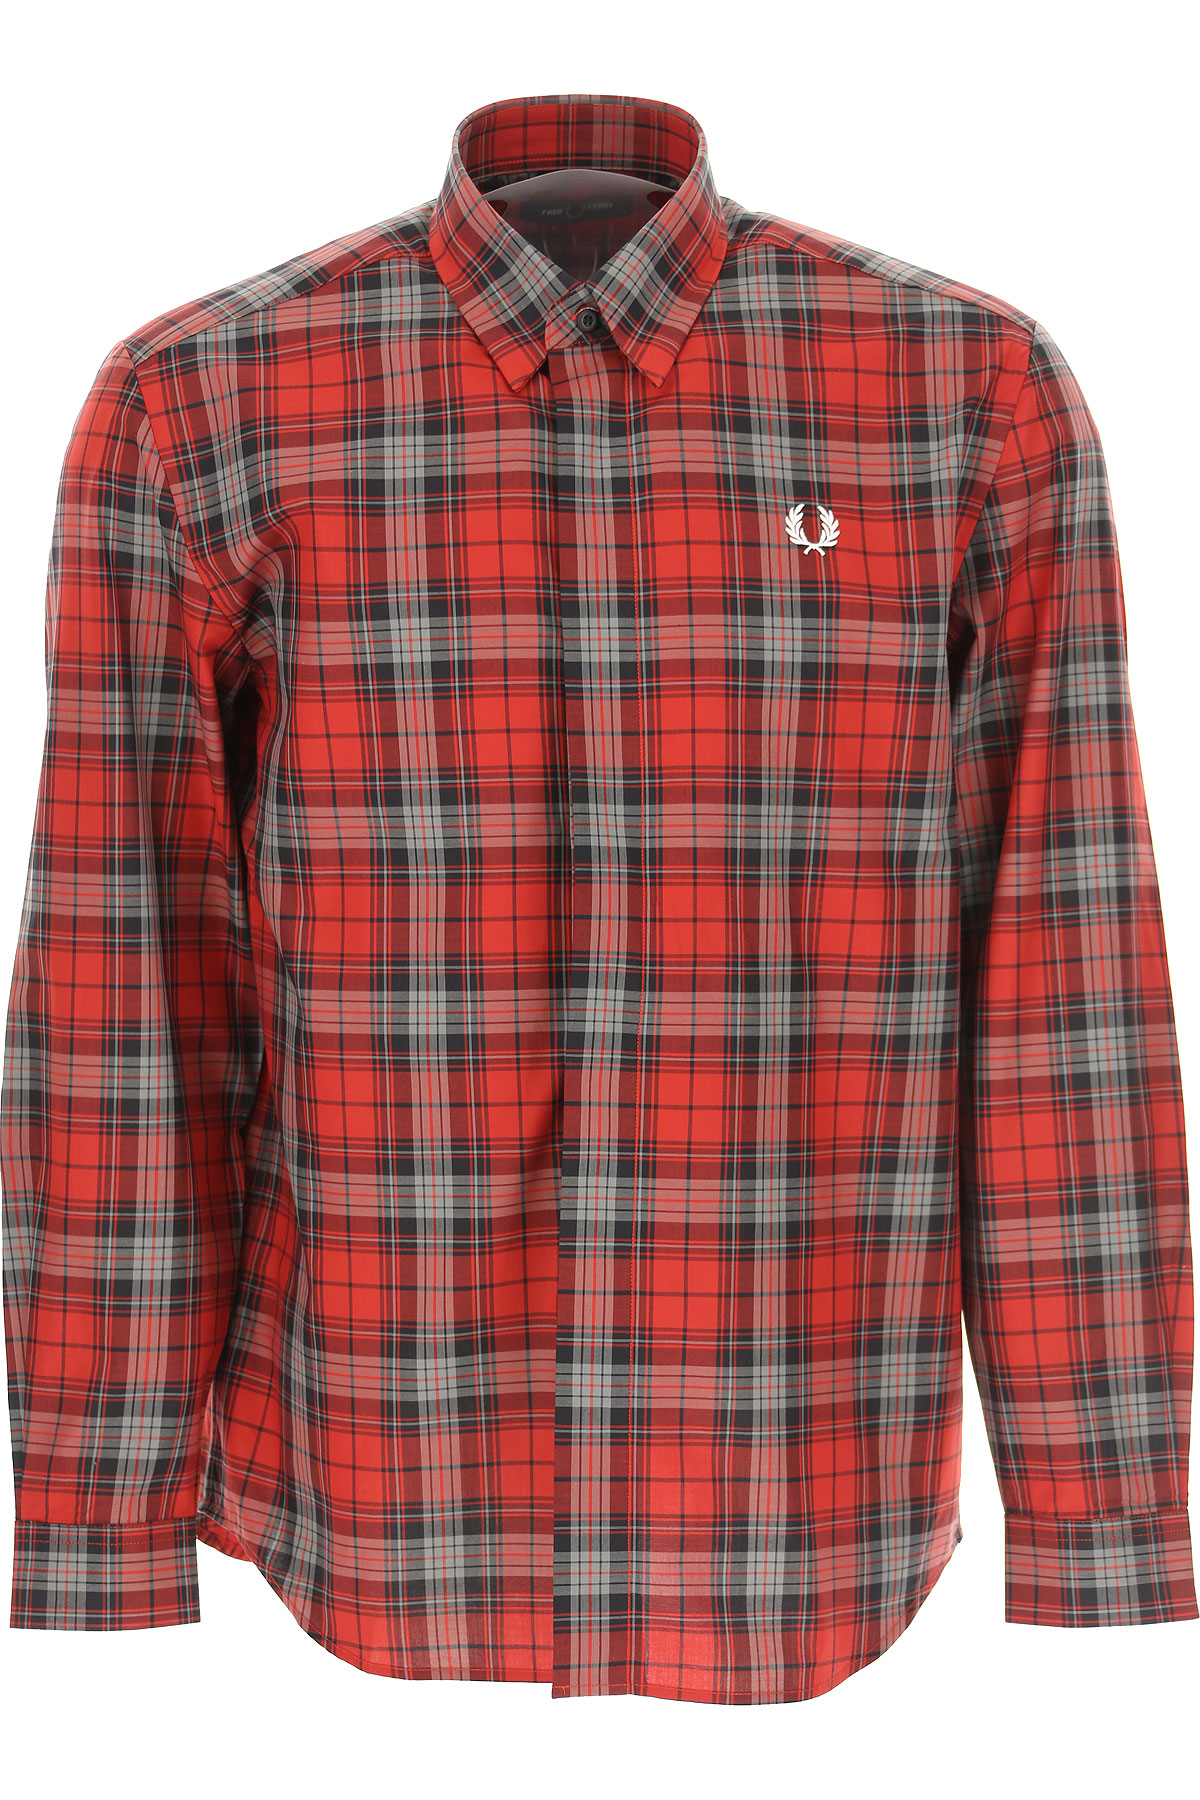 Fred Perry Mens Clothing On Sale, Red, Cotton, 2019, L M XL XXL